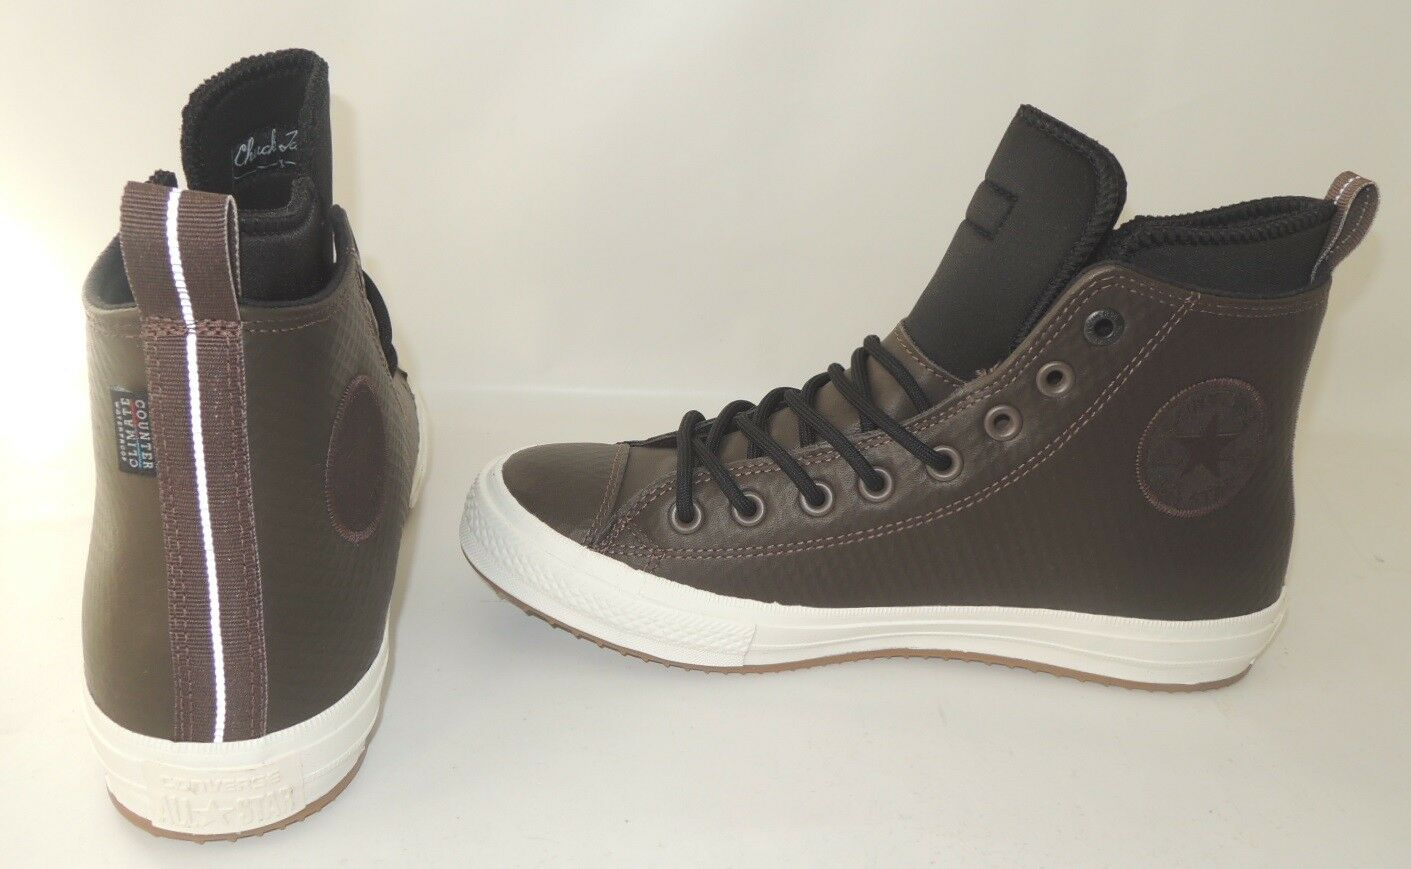 NEU Converse CT All Star II Boot Hi 41 Chuck Taylor Chucks 153573C TOP Schuhe